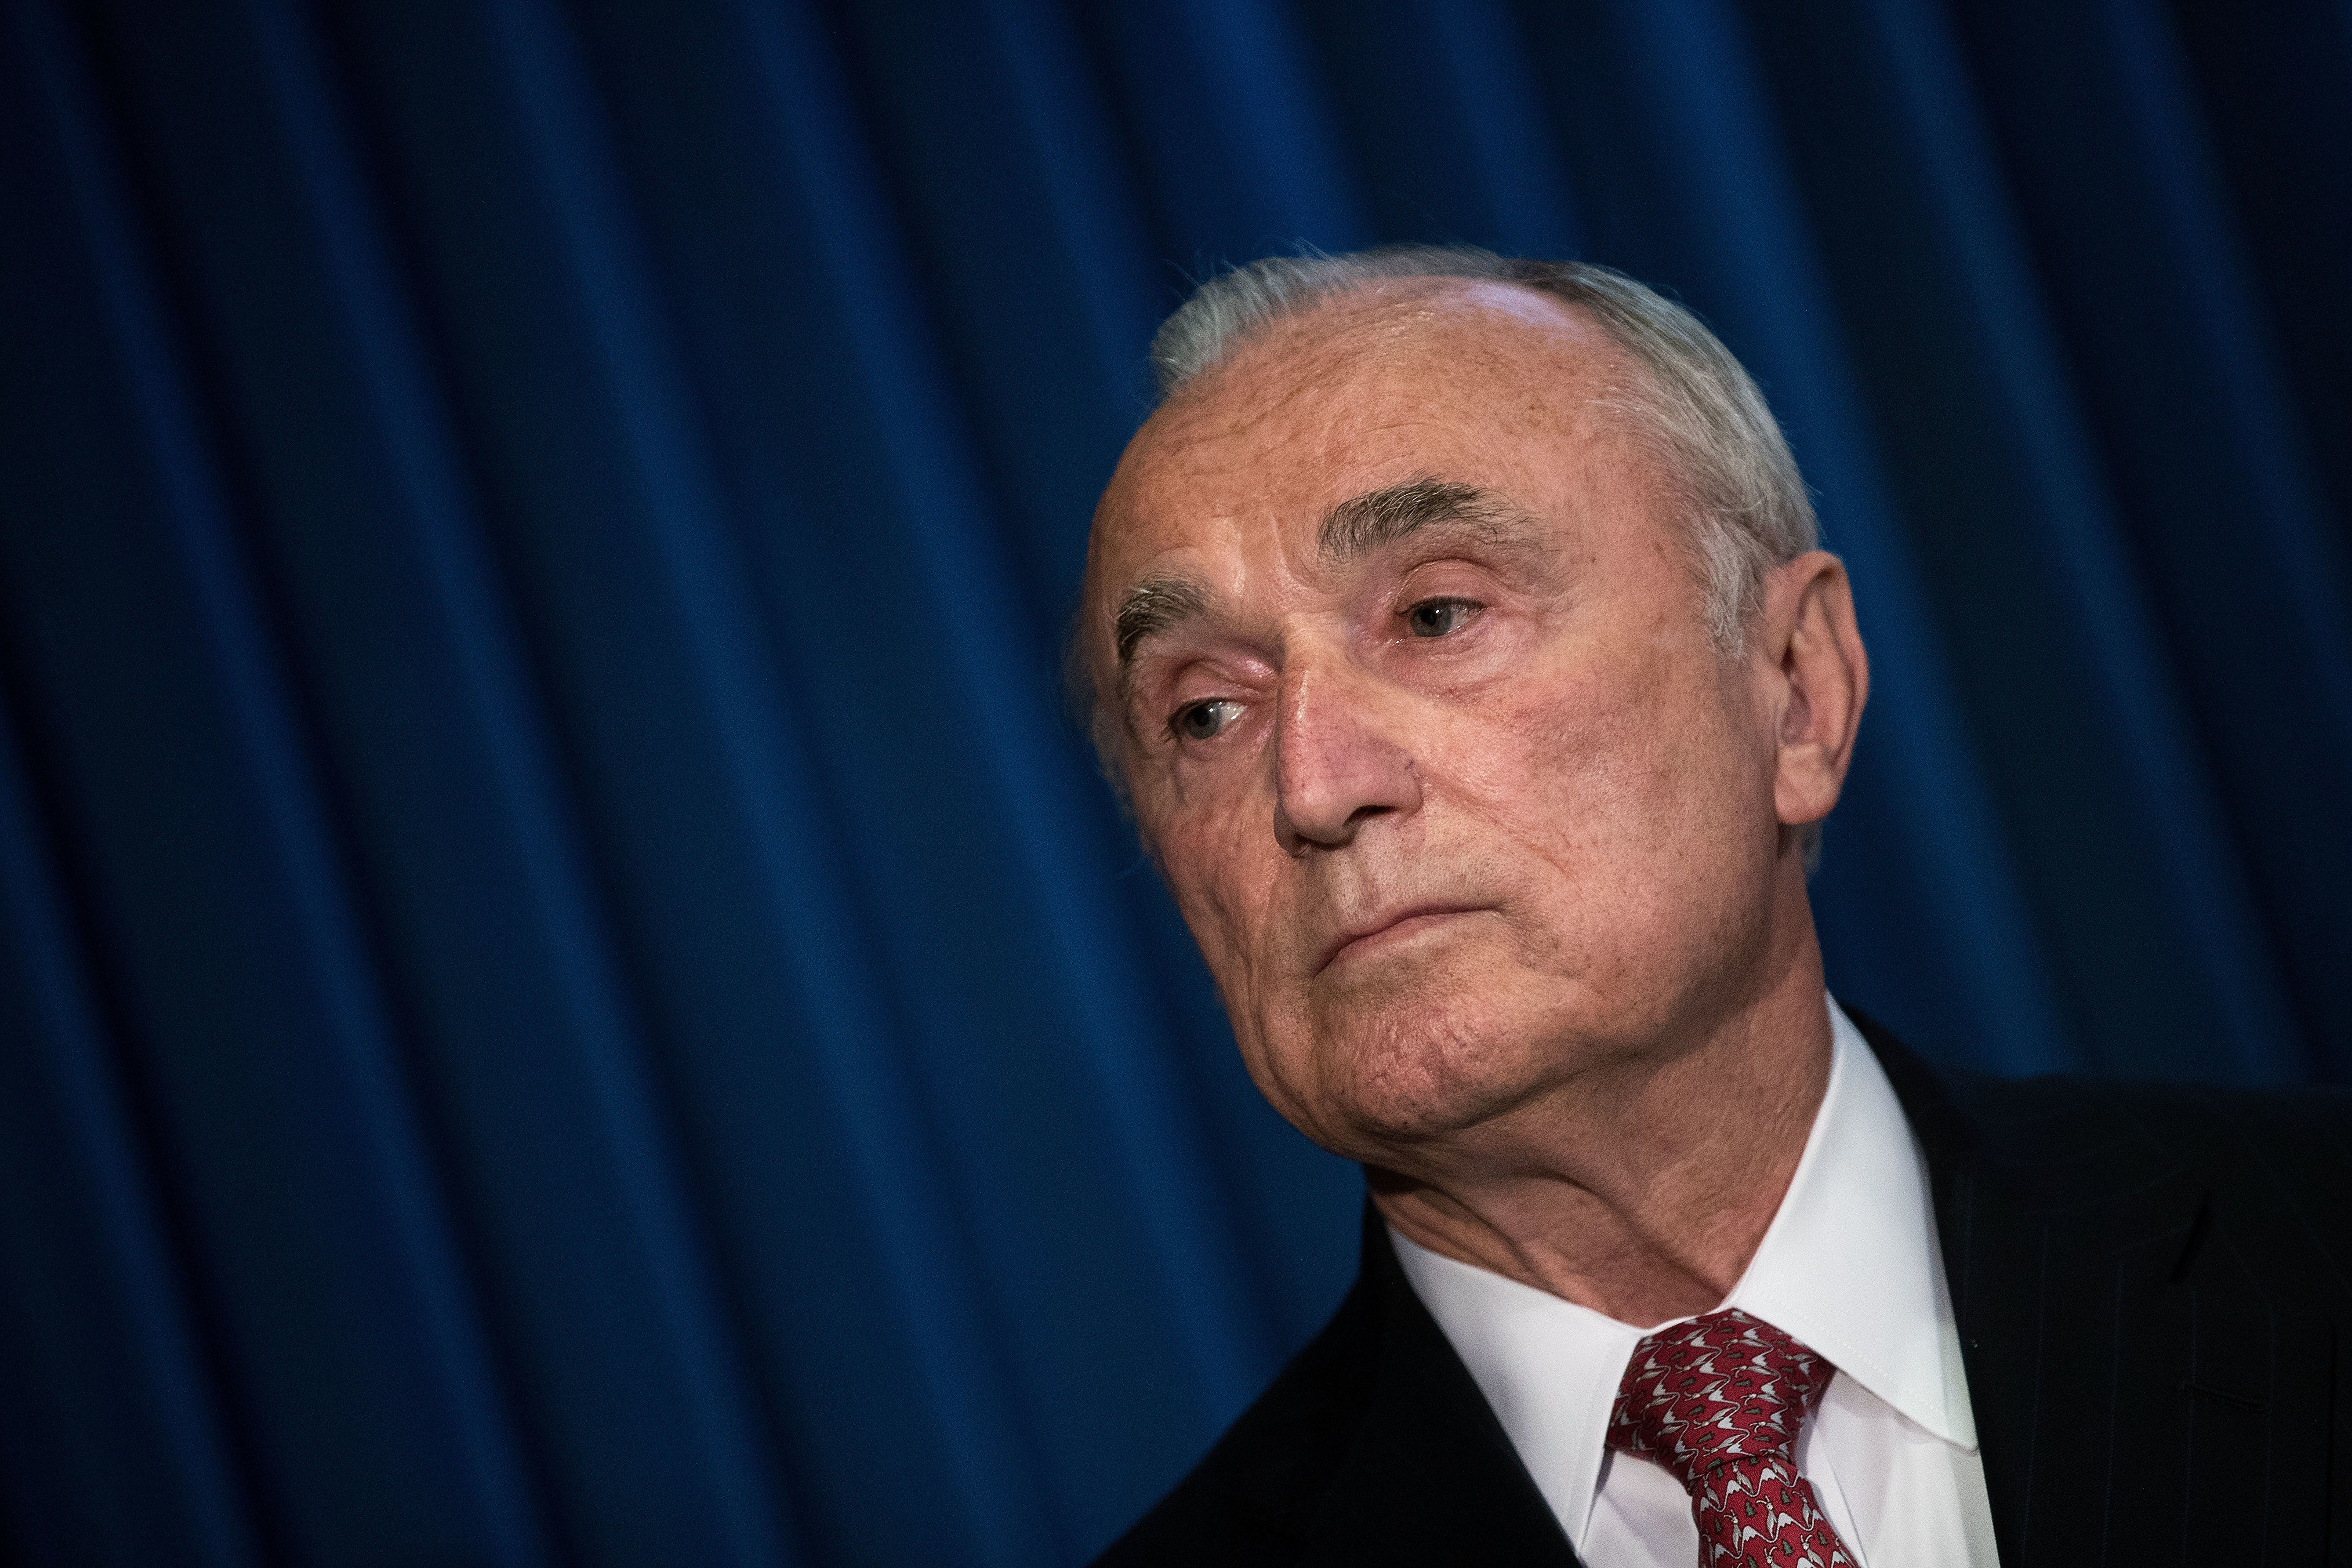 NEW YORK, NY - JUNE 20: William 'Bill' Bratton, Commissioner of the New York City Police Department, listens during a press conference announcing corruption charges against members the New York City Police Department, at the U.S. Attorney's Office, Southern District of New York, June 20, 2016 in New York City.  Early Monday morning, three members of the New York City Police Department and a businessman, who is a top fundraiser for New York City Mayor Bill de Blasio, were arrested on federal corruption charges including the exchange of lavish gifts for favors. (Photo by Drew Angerer/Getty Images)